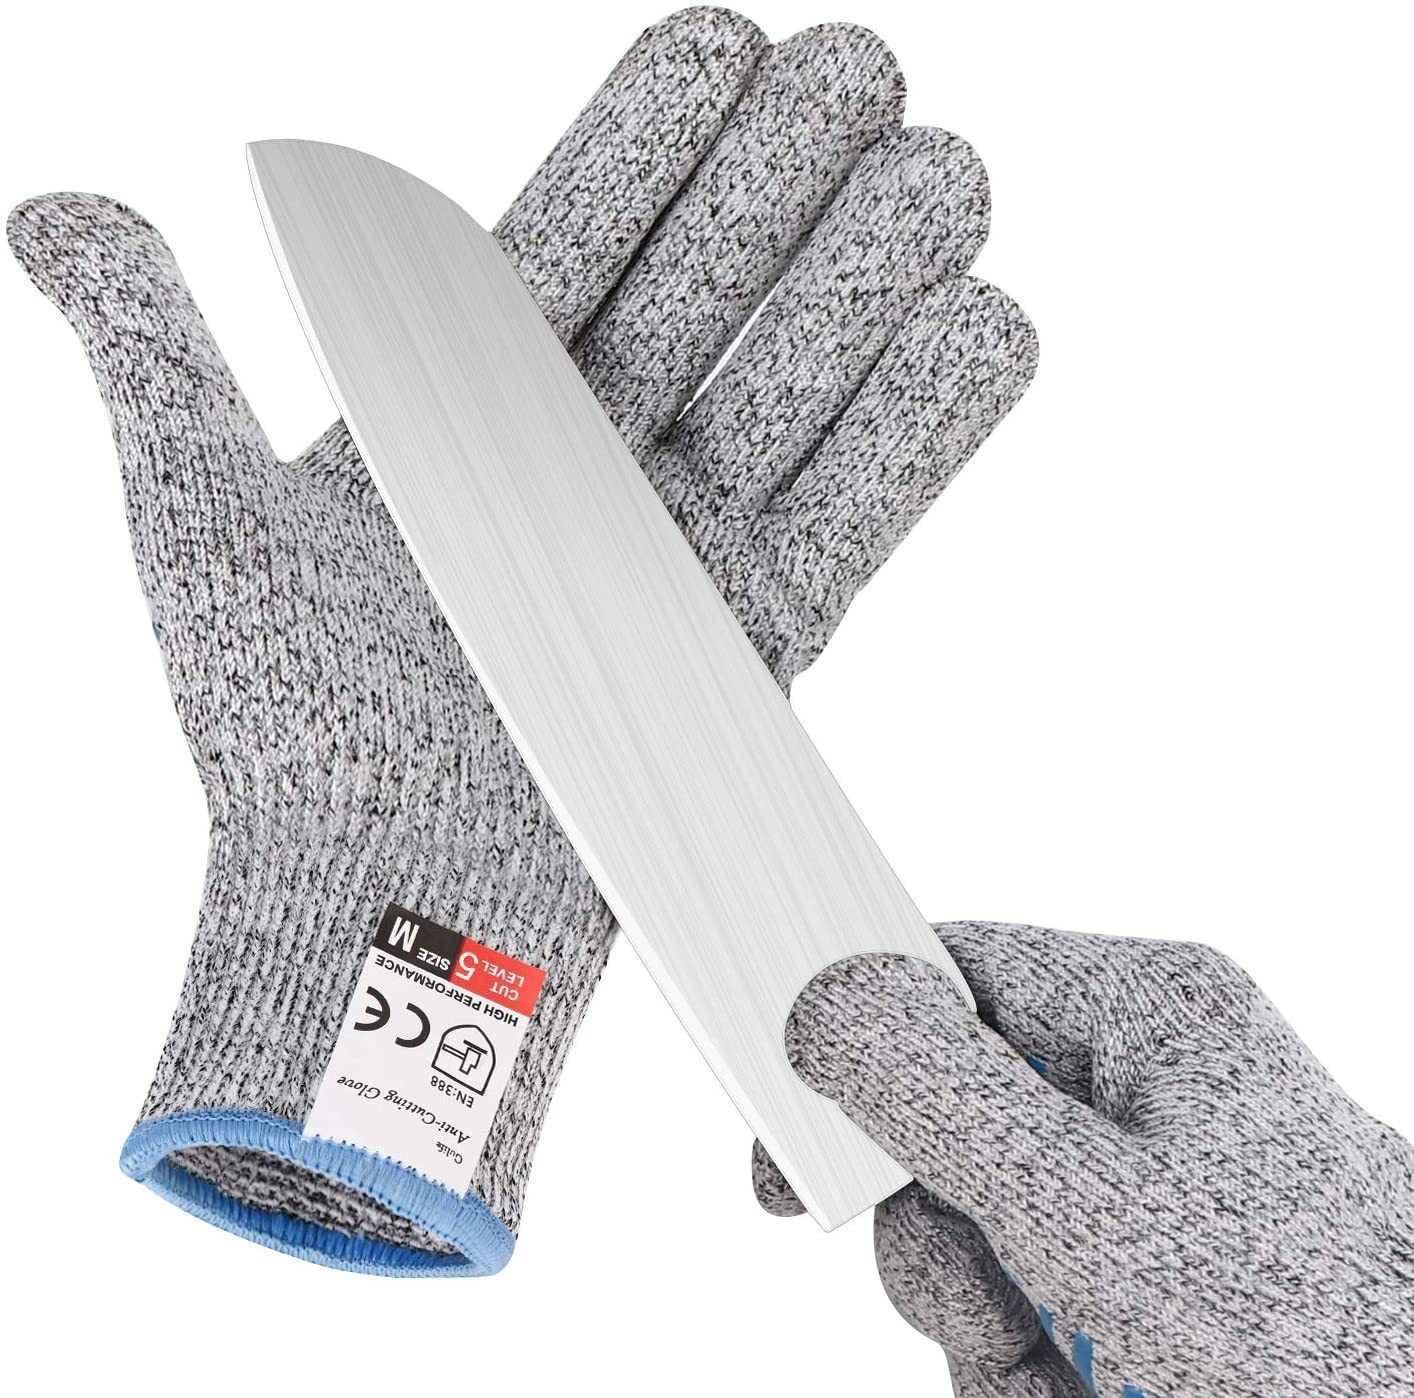 Gülife Cut Resistant Gloves Food Grade Level 5 Protection, Touch Screen Sensitive, Safety Cutting Gloves for Kitchen and Outdoor, Size Large (1 Pair included)